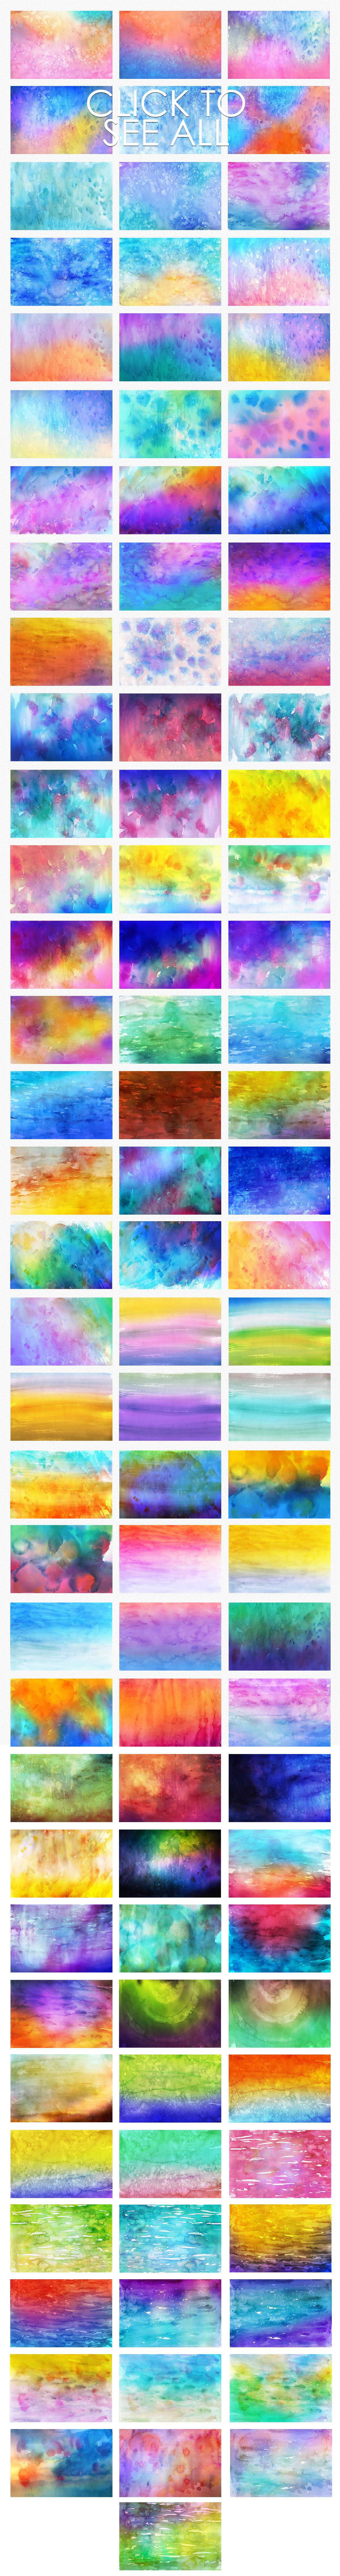 Only Watercolor Backgrounds Bundle example image 14